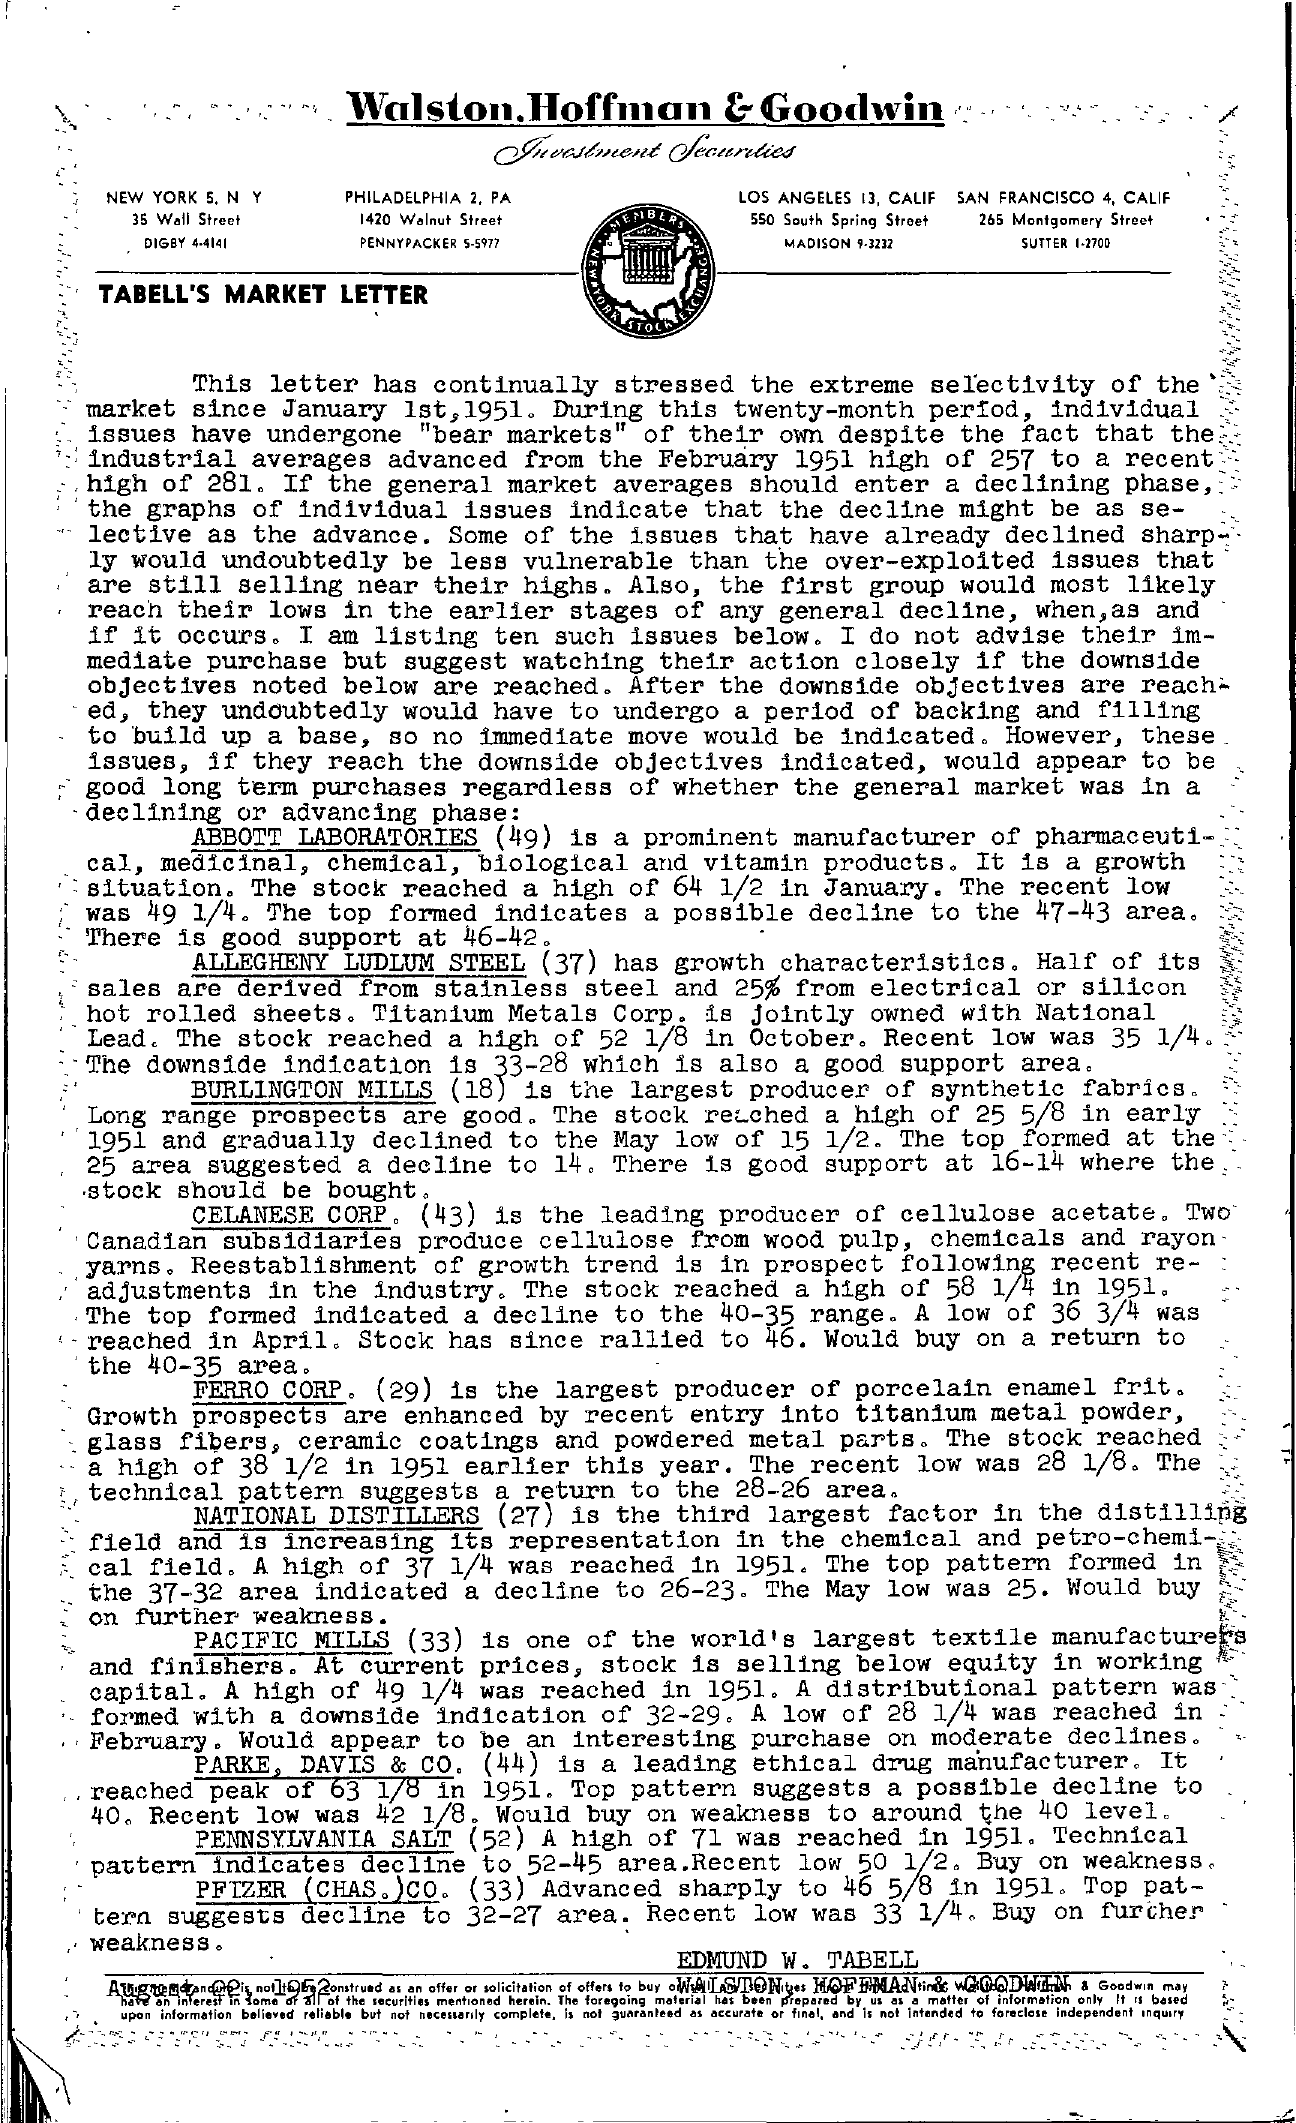 Tabell's Market Letter - August 22, 1952